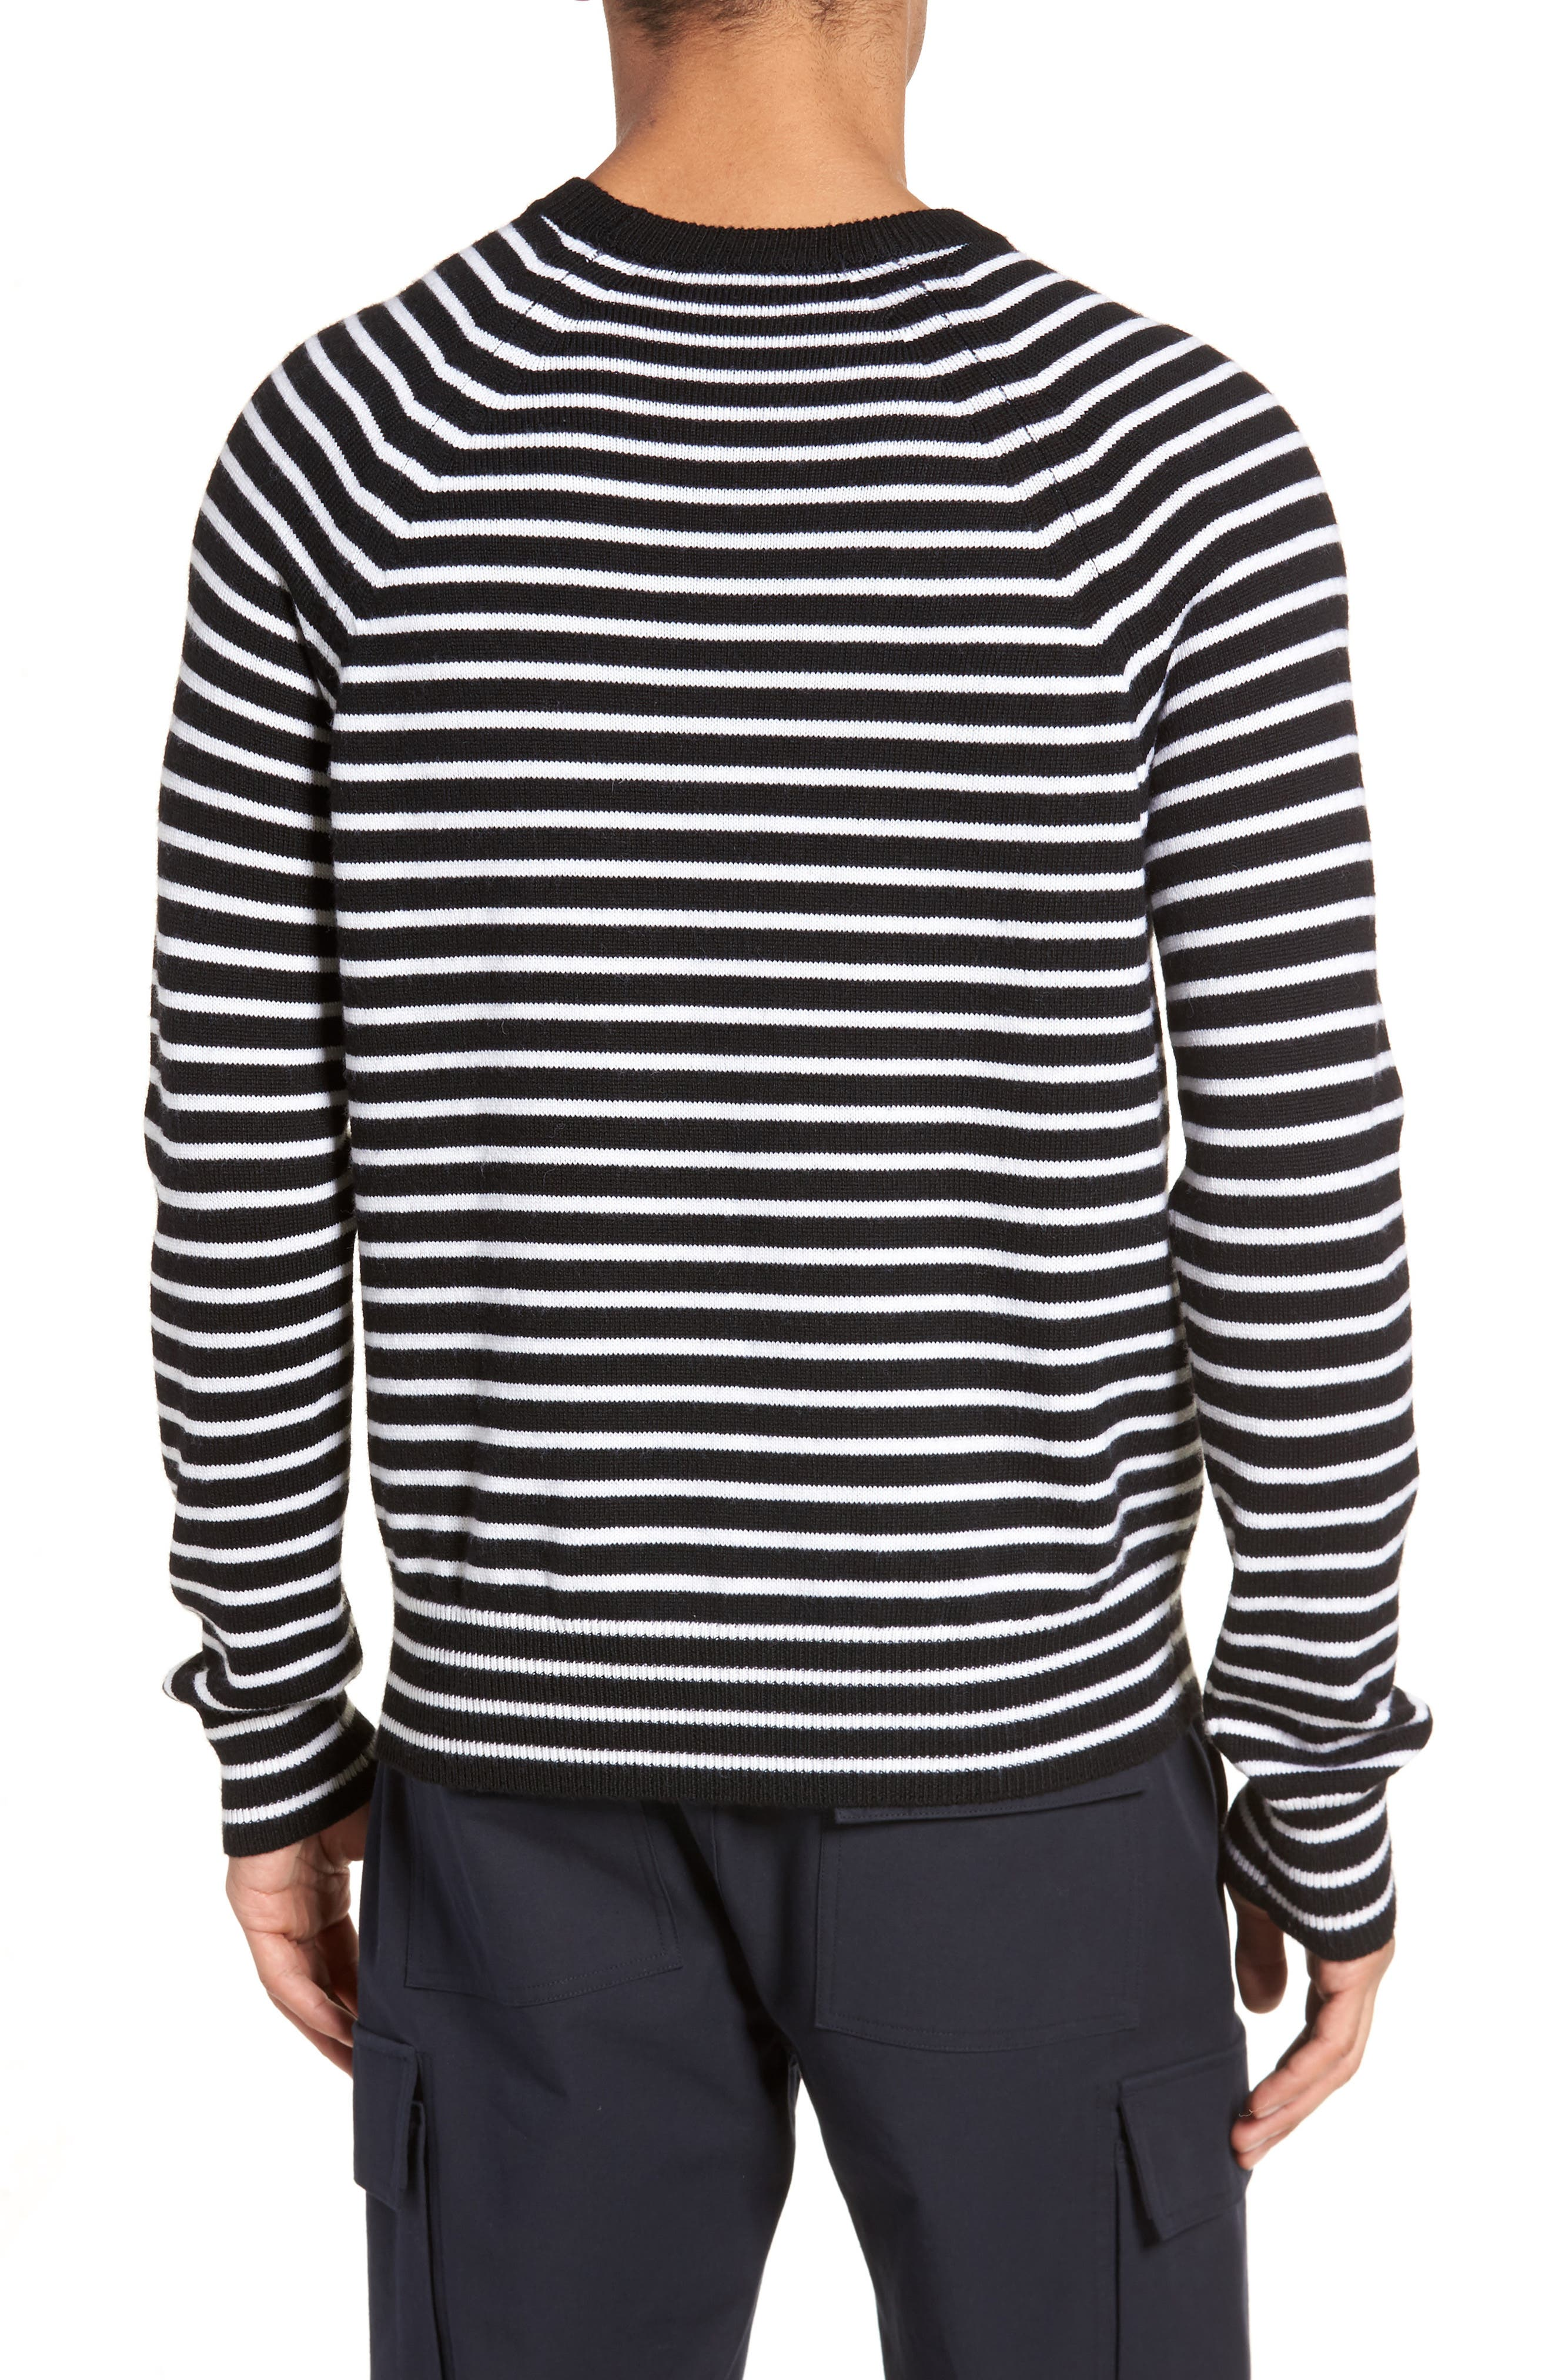 Regular Fit Striped Wool Sweater,                             Alternate thumbnail 2, color,                             Black/ Stormy White